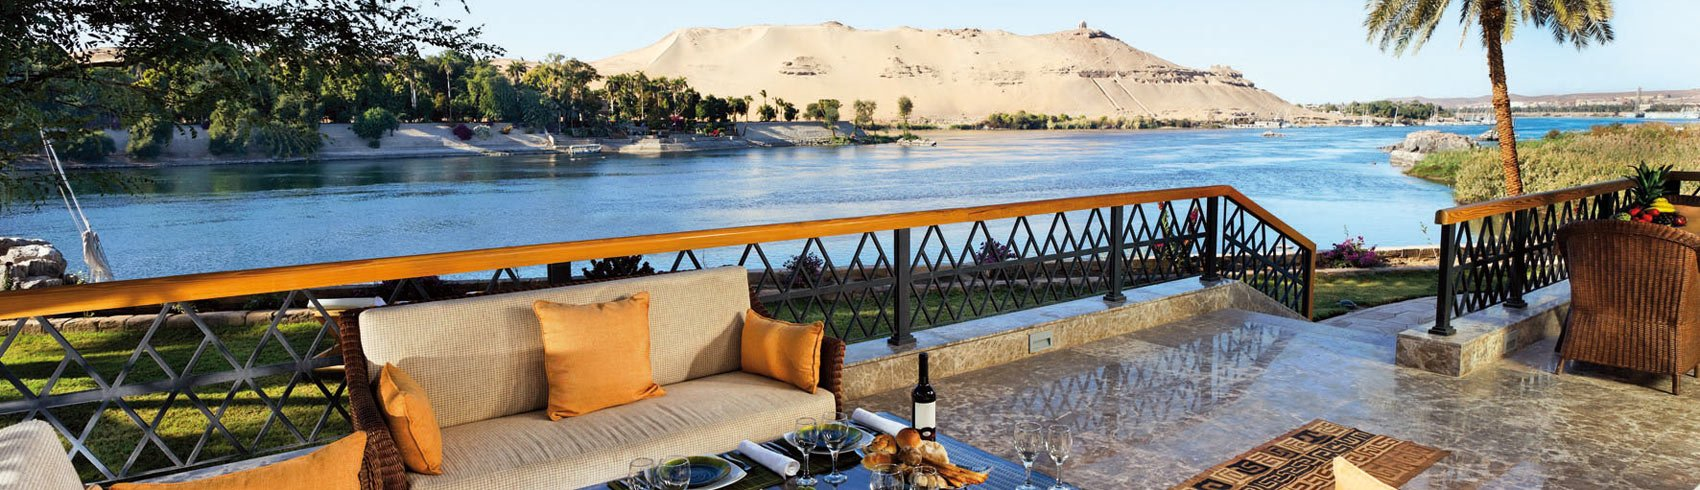 Elephantine Island Aswan, Mövenpick Resort Aswan | Resort on Elephantine Island